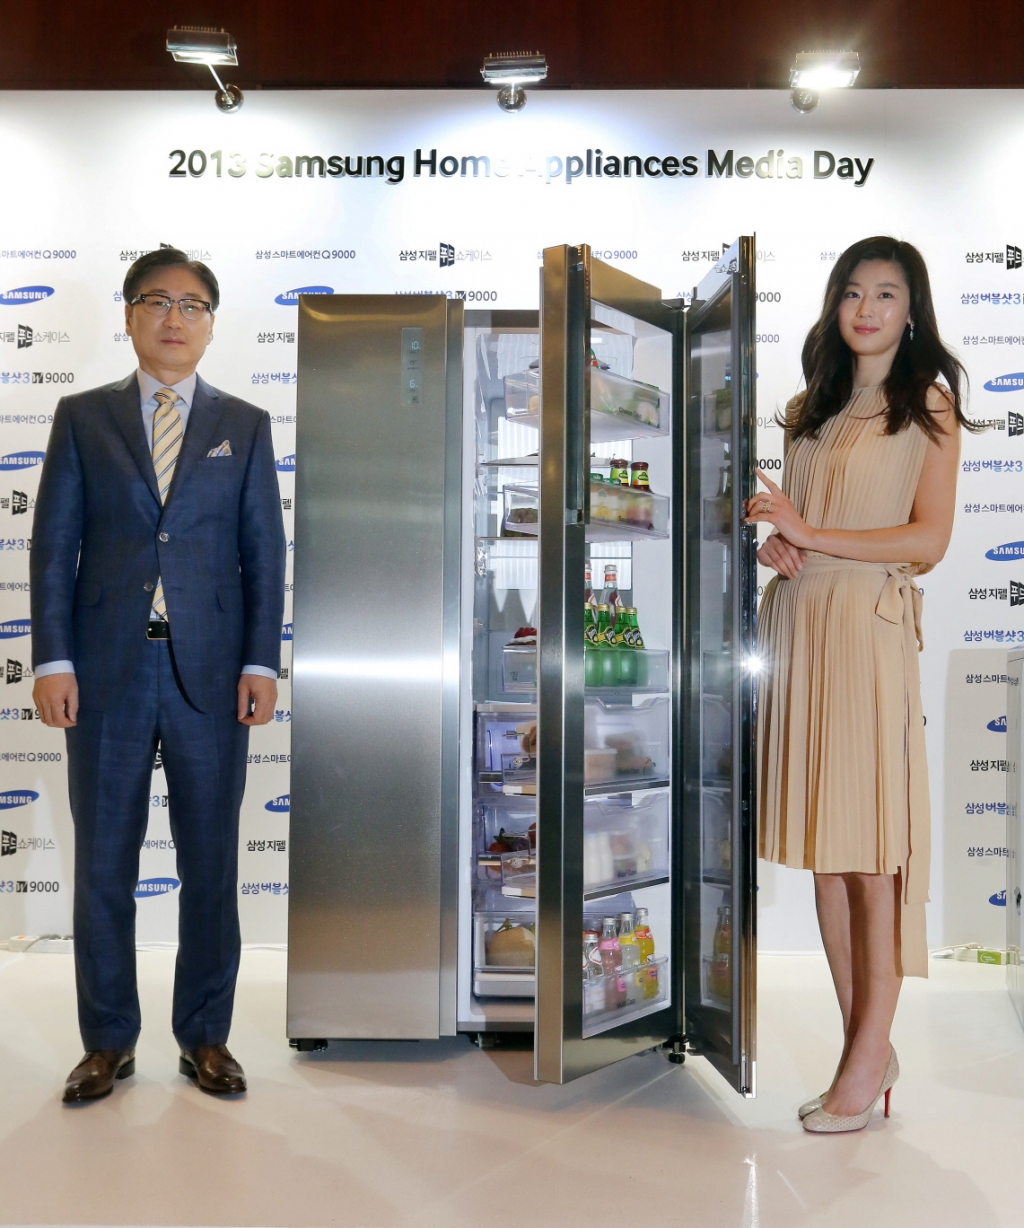 Samsung Aims High to Become World's No. 1 with Premium Home Appliance 9000 Series